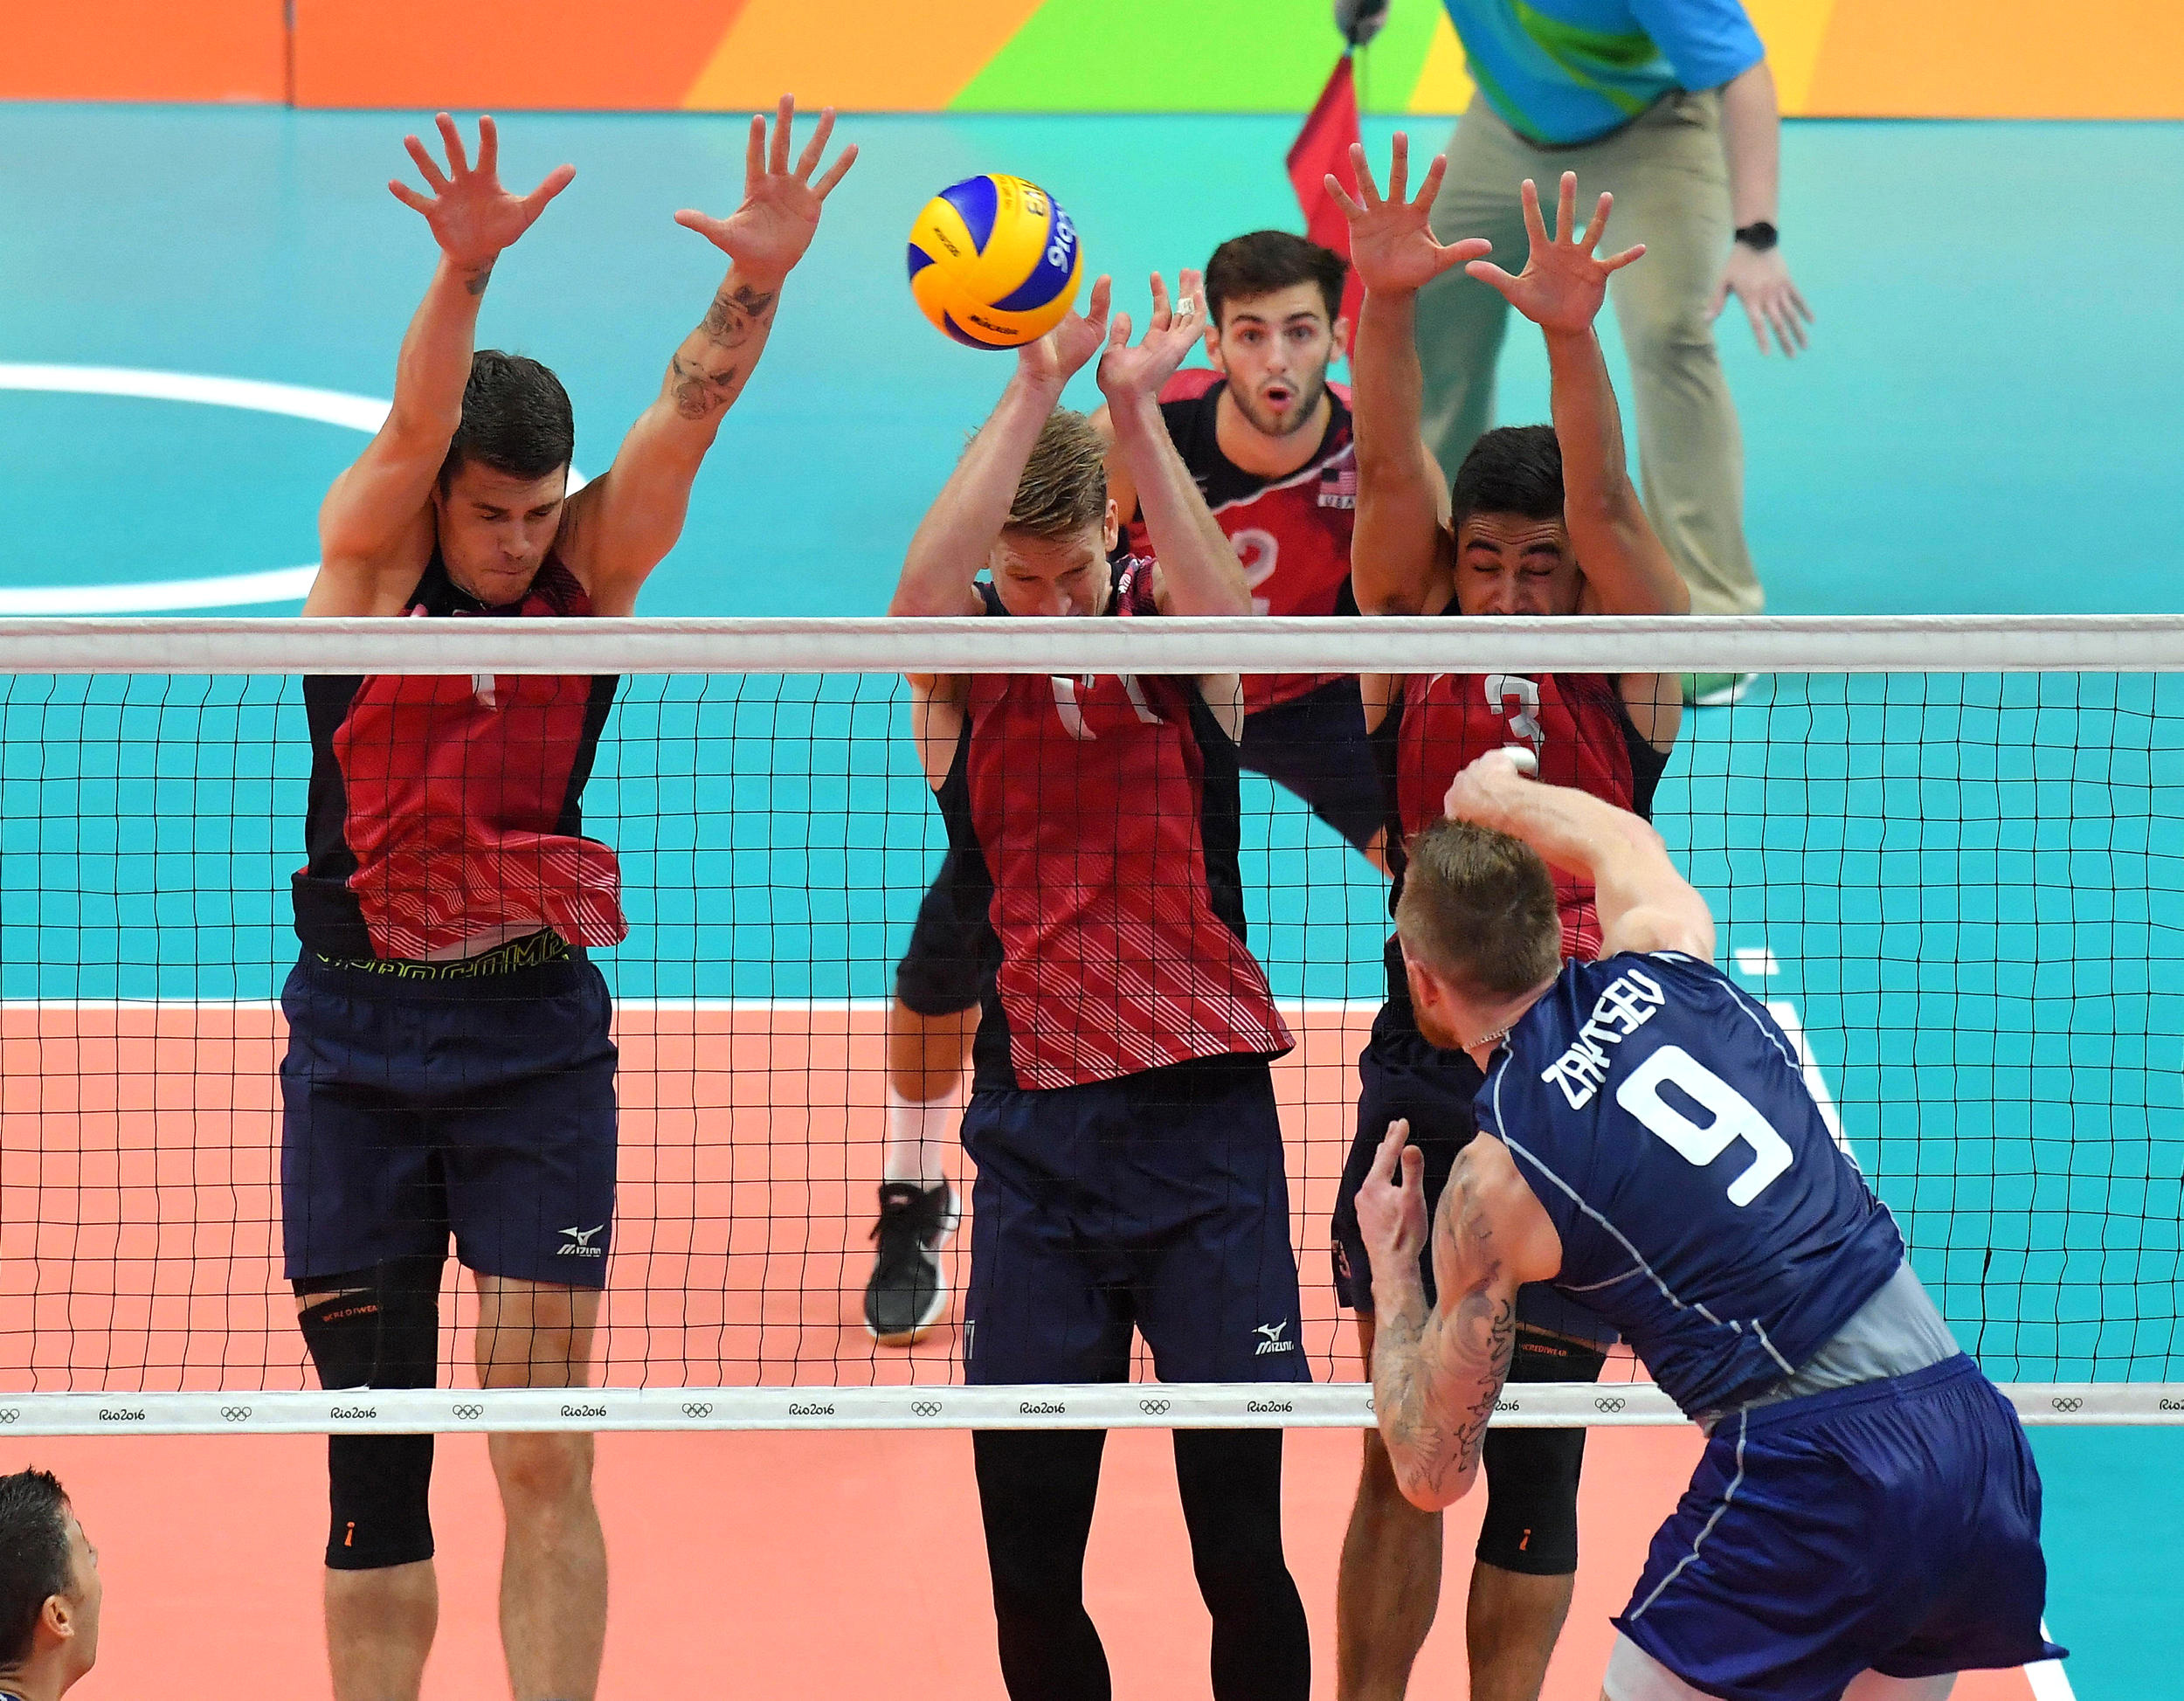 http://www.fivb.org/Vis2009/Images/GetImage.asmx?No=201653322&maxSize=960